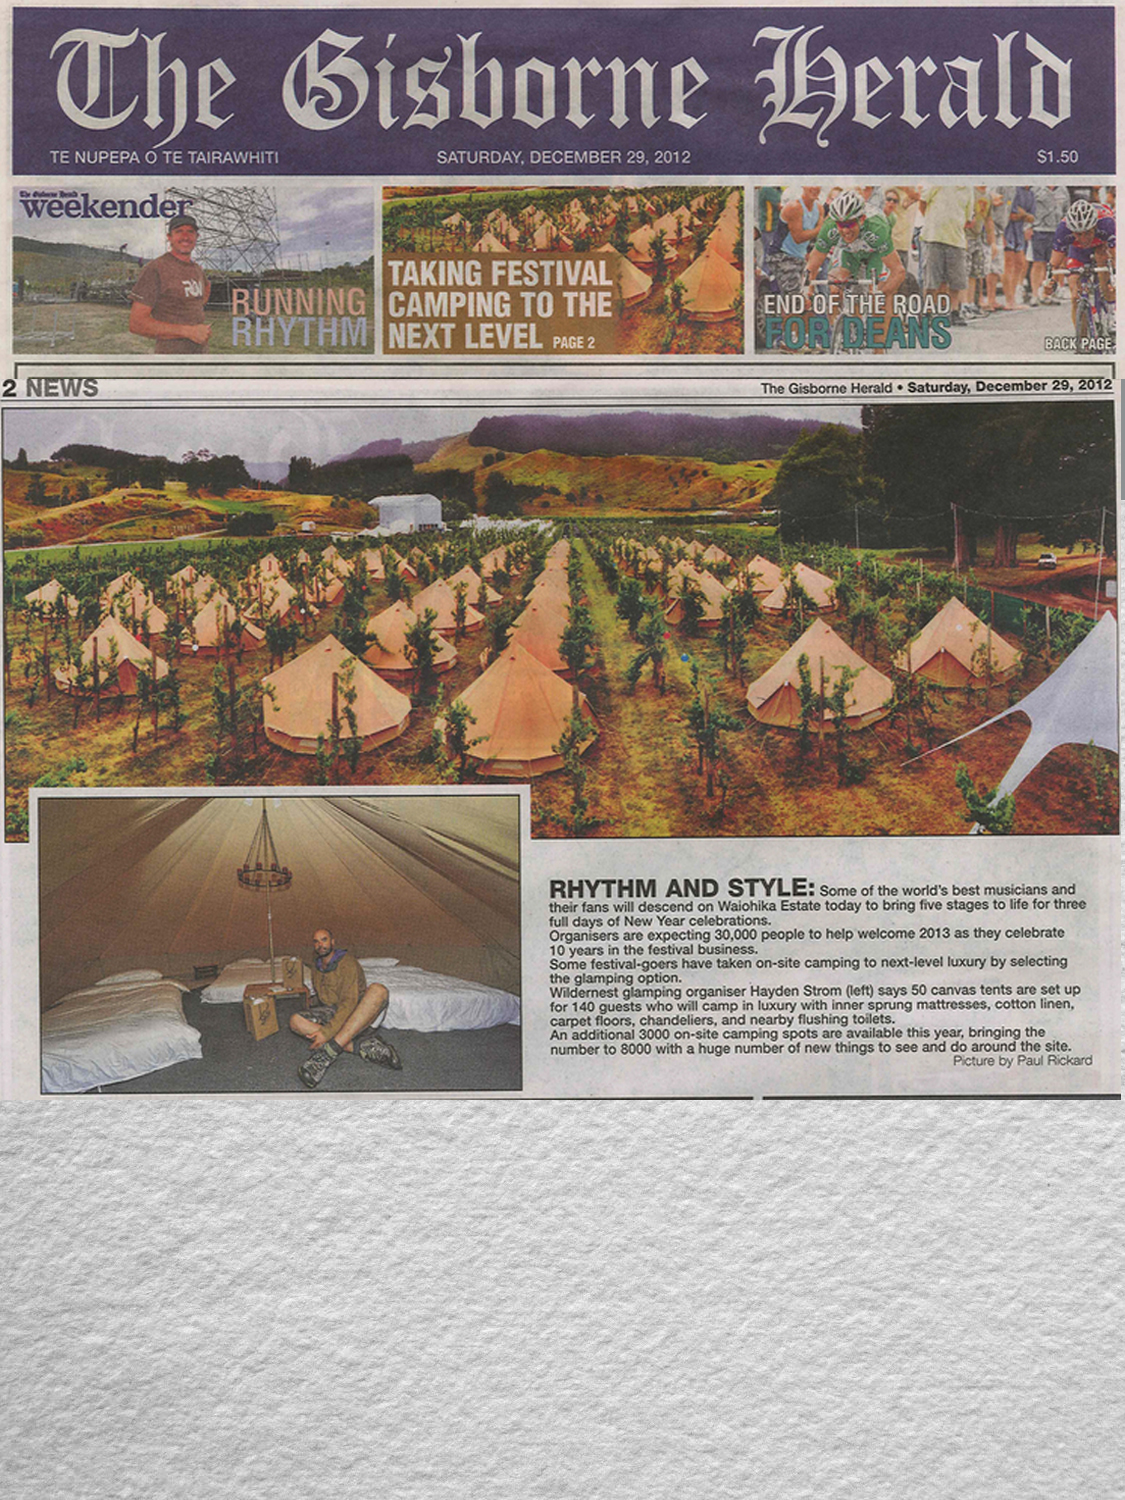 WILDERNEST IN THE GISBORNE HERALD